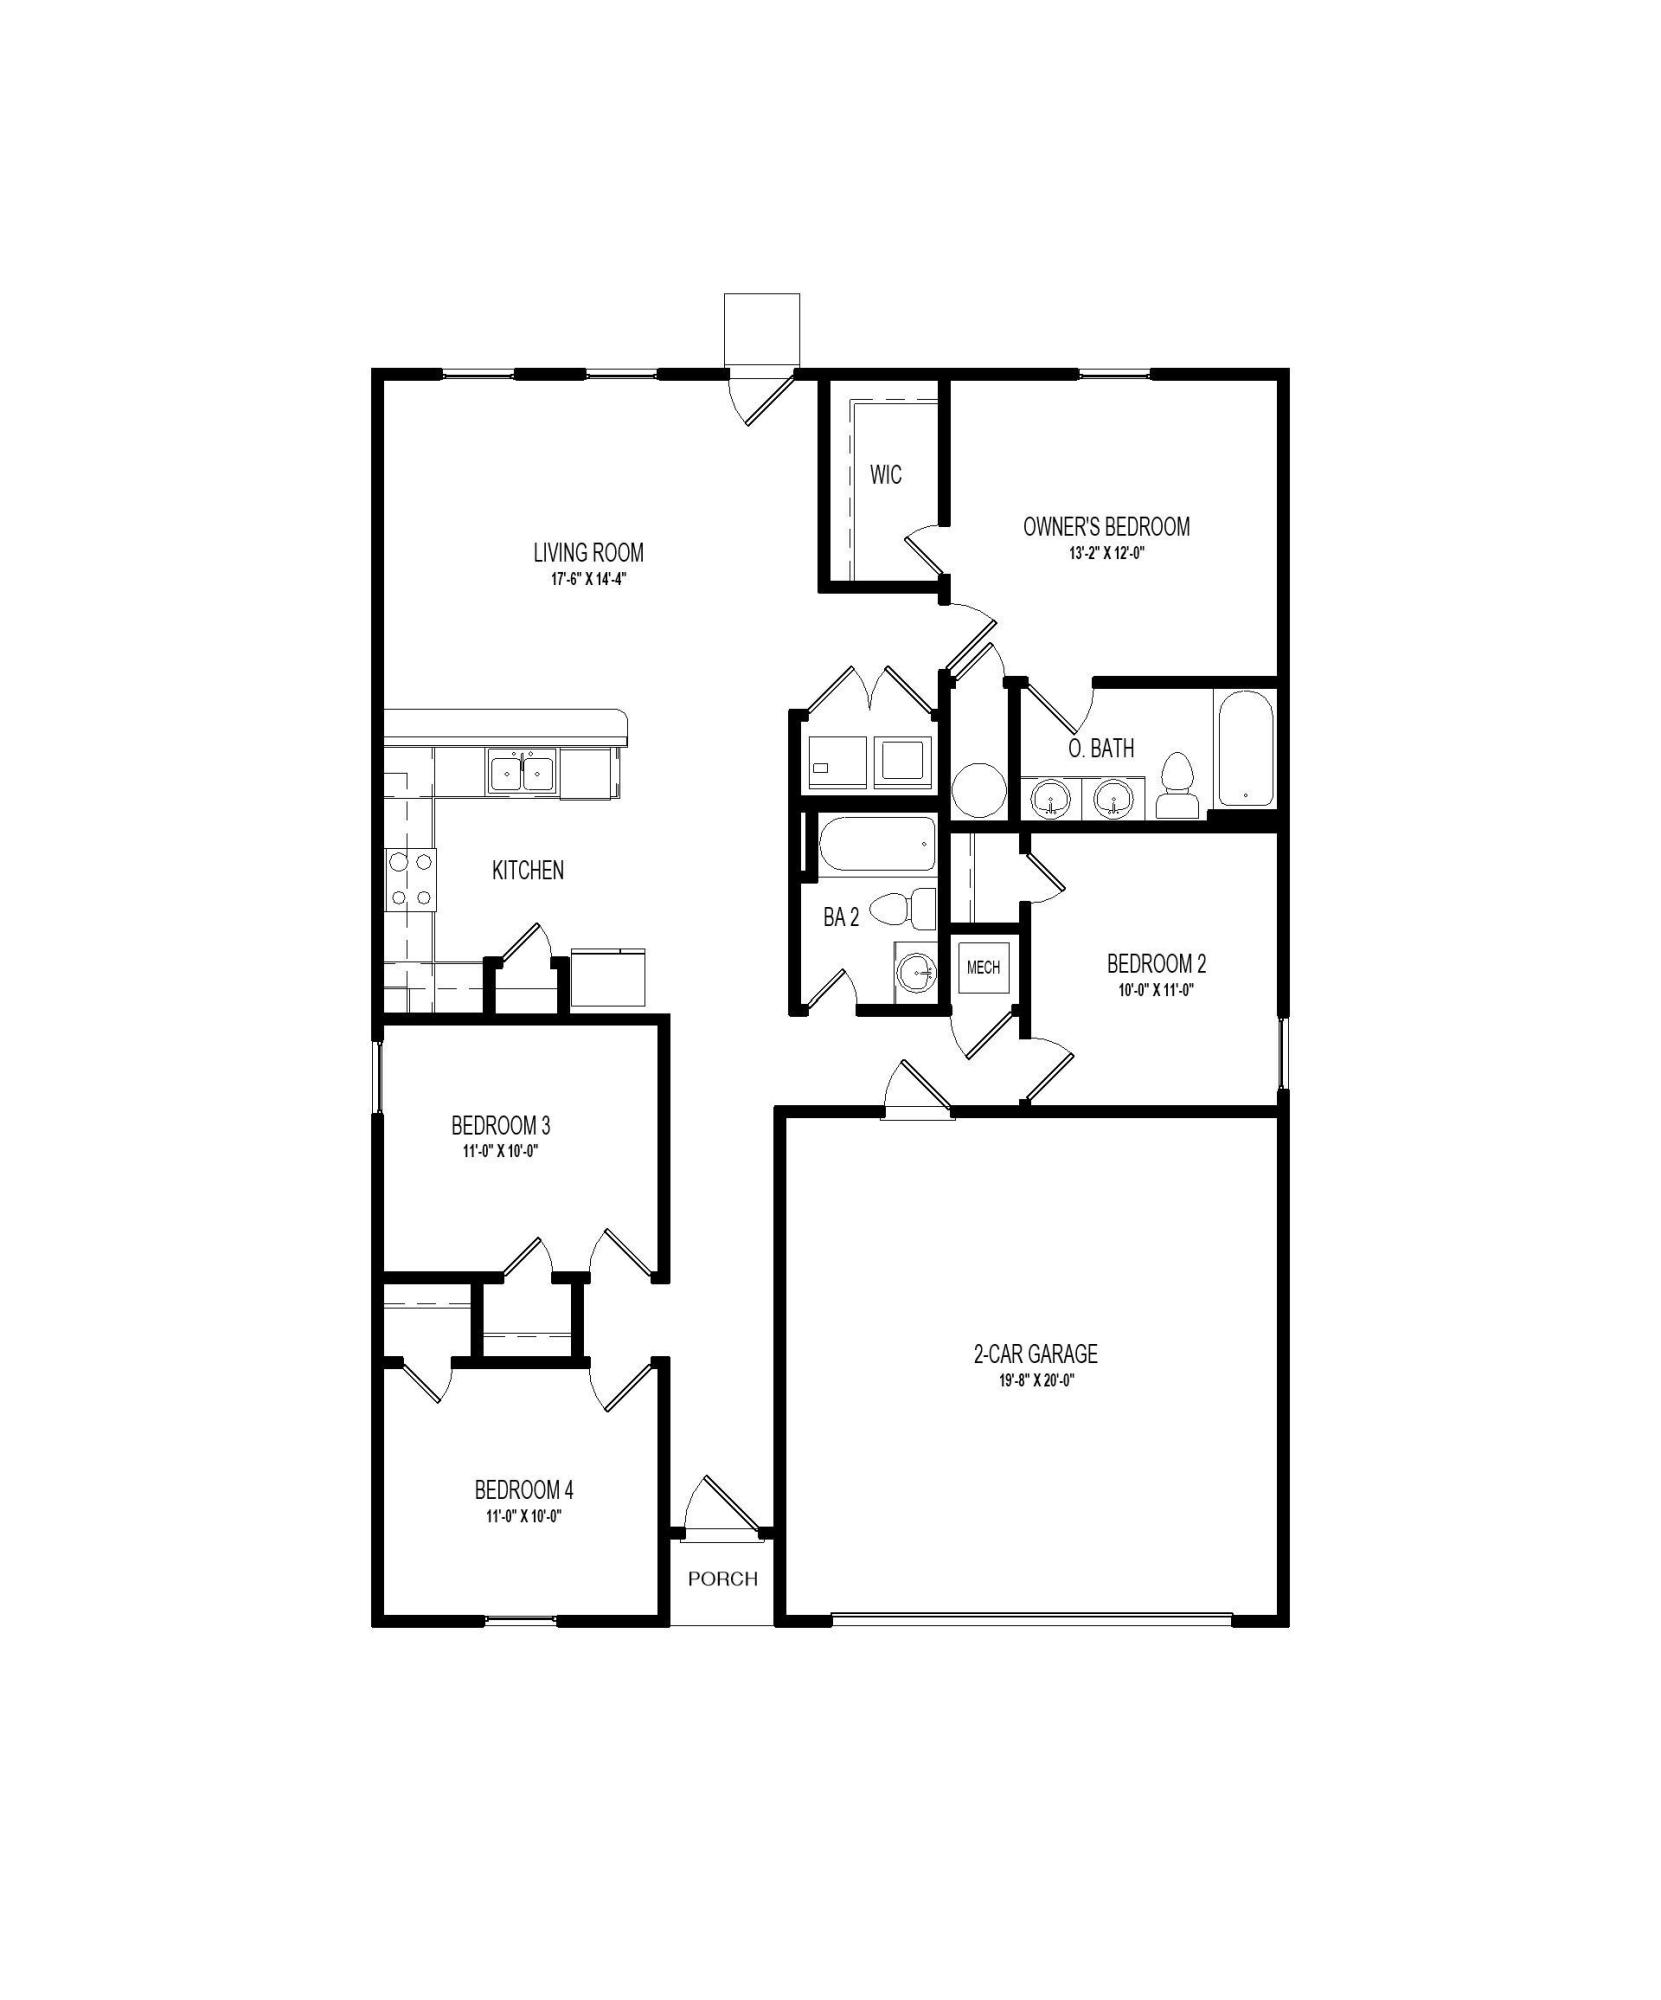 Image 2 For 1644 Airoso Boulevard Sw